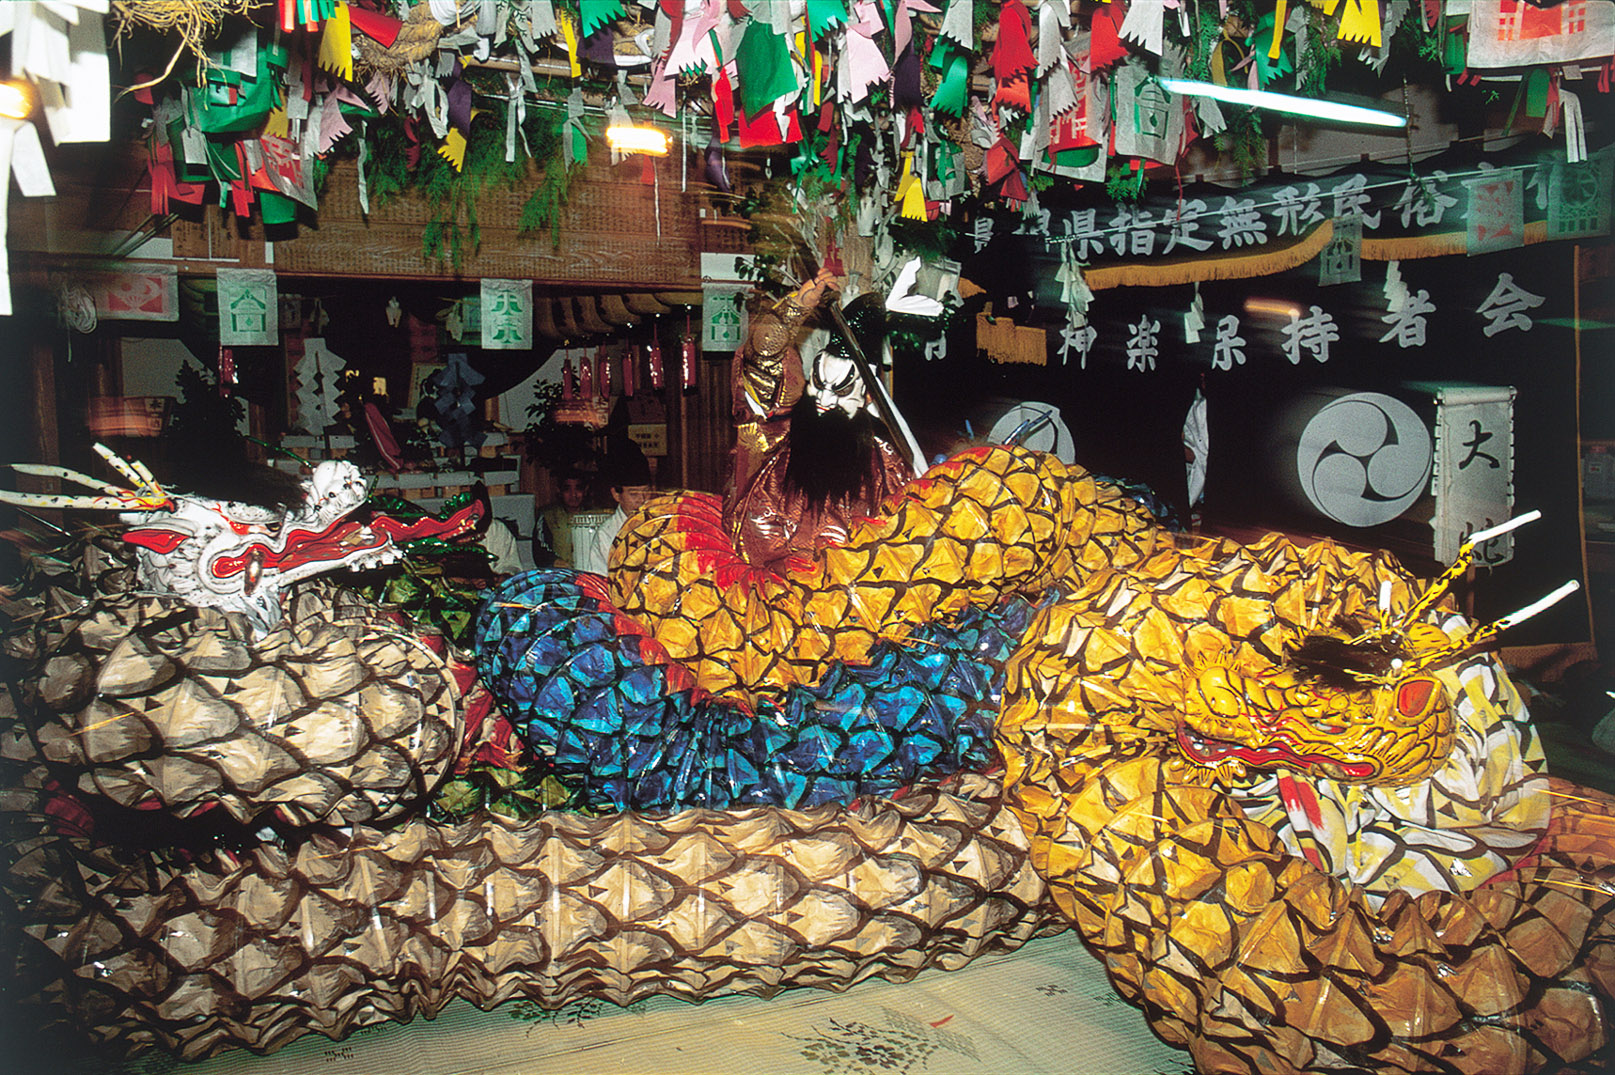 Yamata no Orochi — Part of the program of Iwami Kagura (a sacred Japanese dance and music ritual dedicated to the gods of Shinto) in Shimane Prefecture depicts the scene of Susanoo defeating the giant snake Orochi.